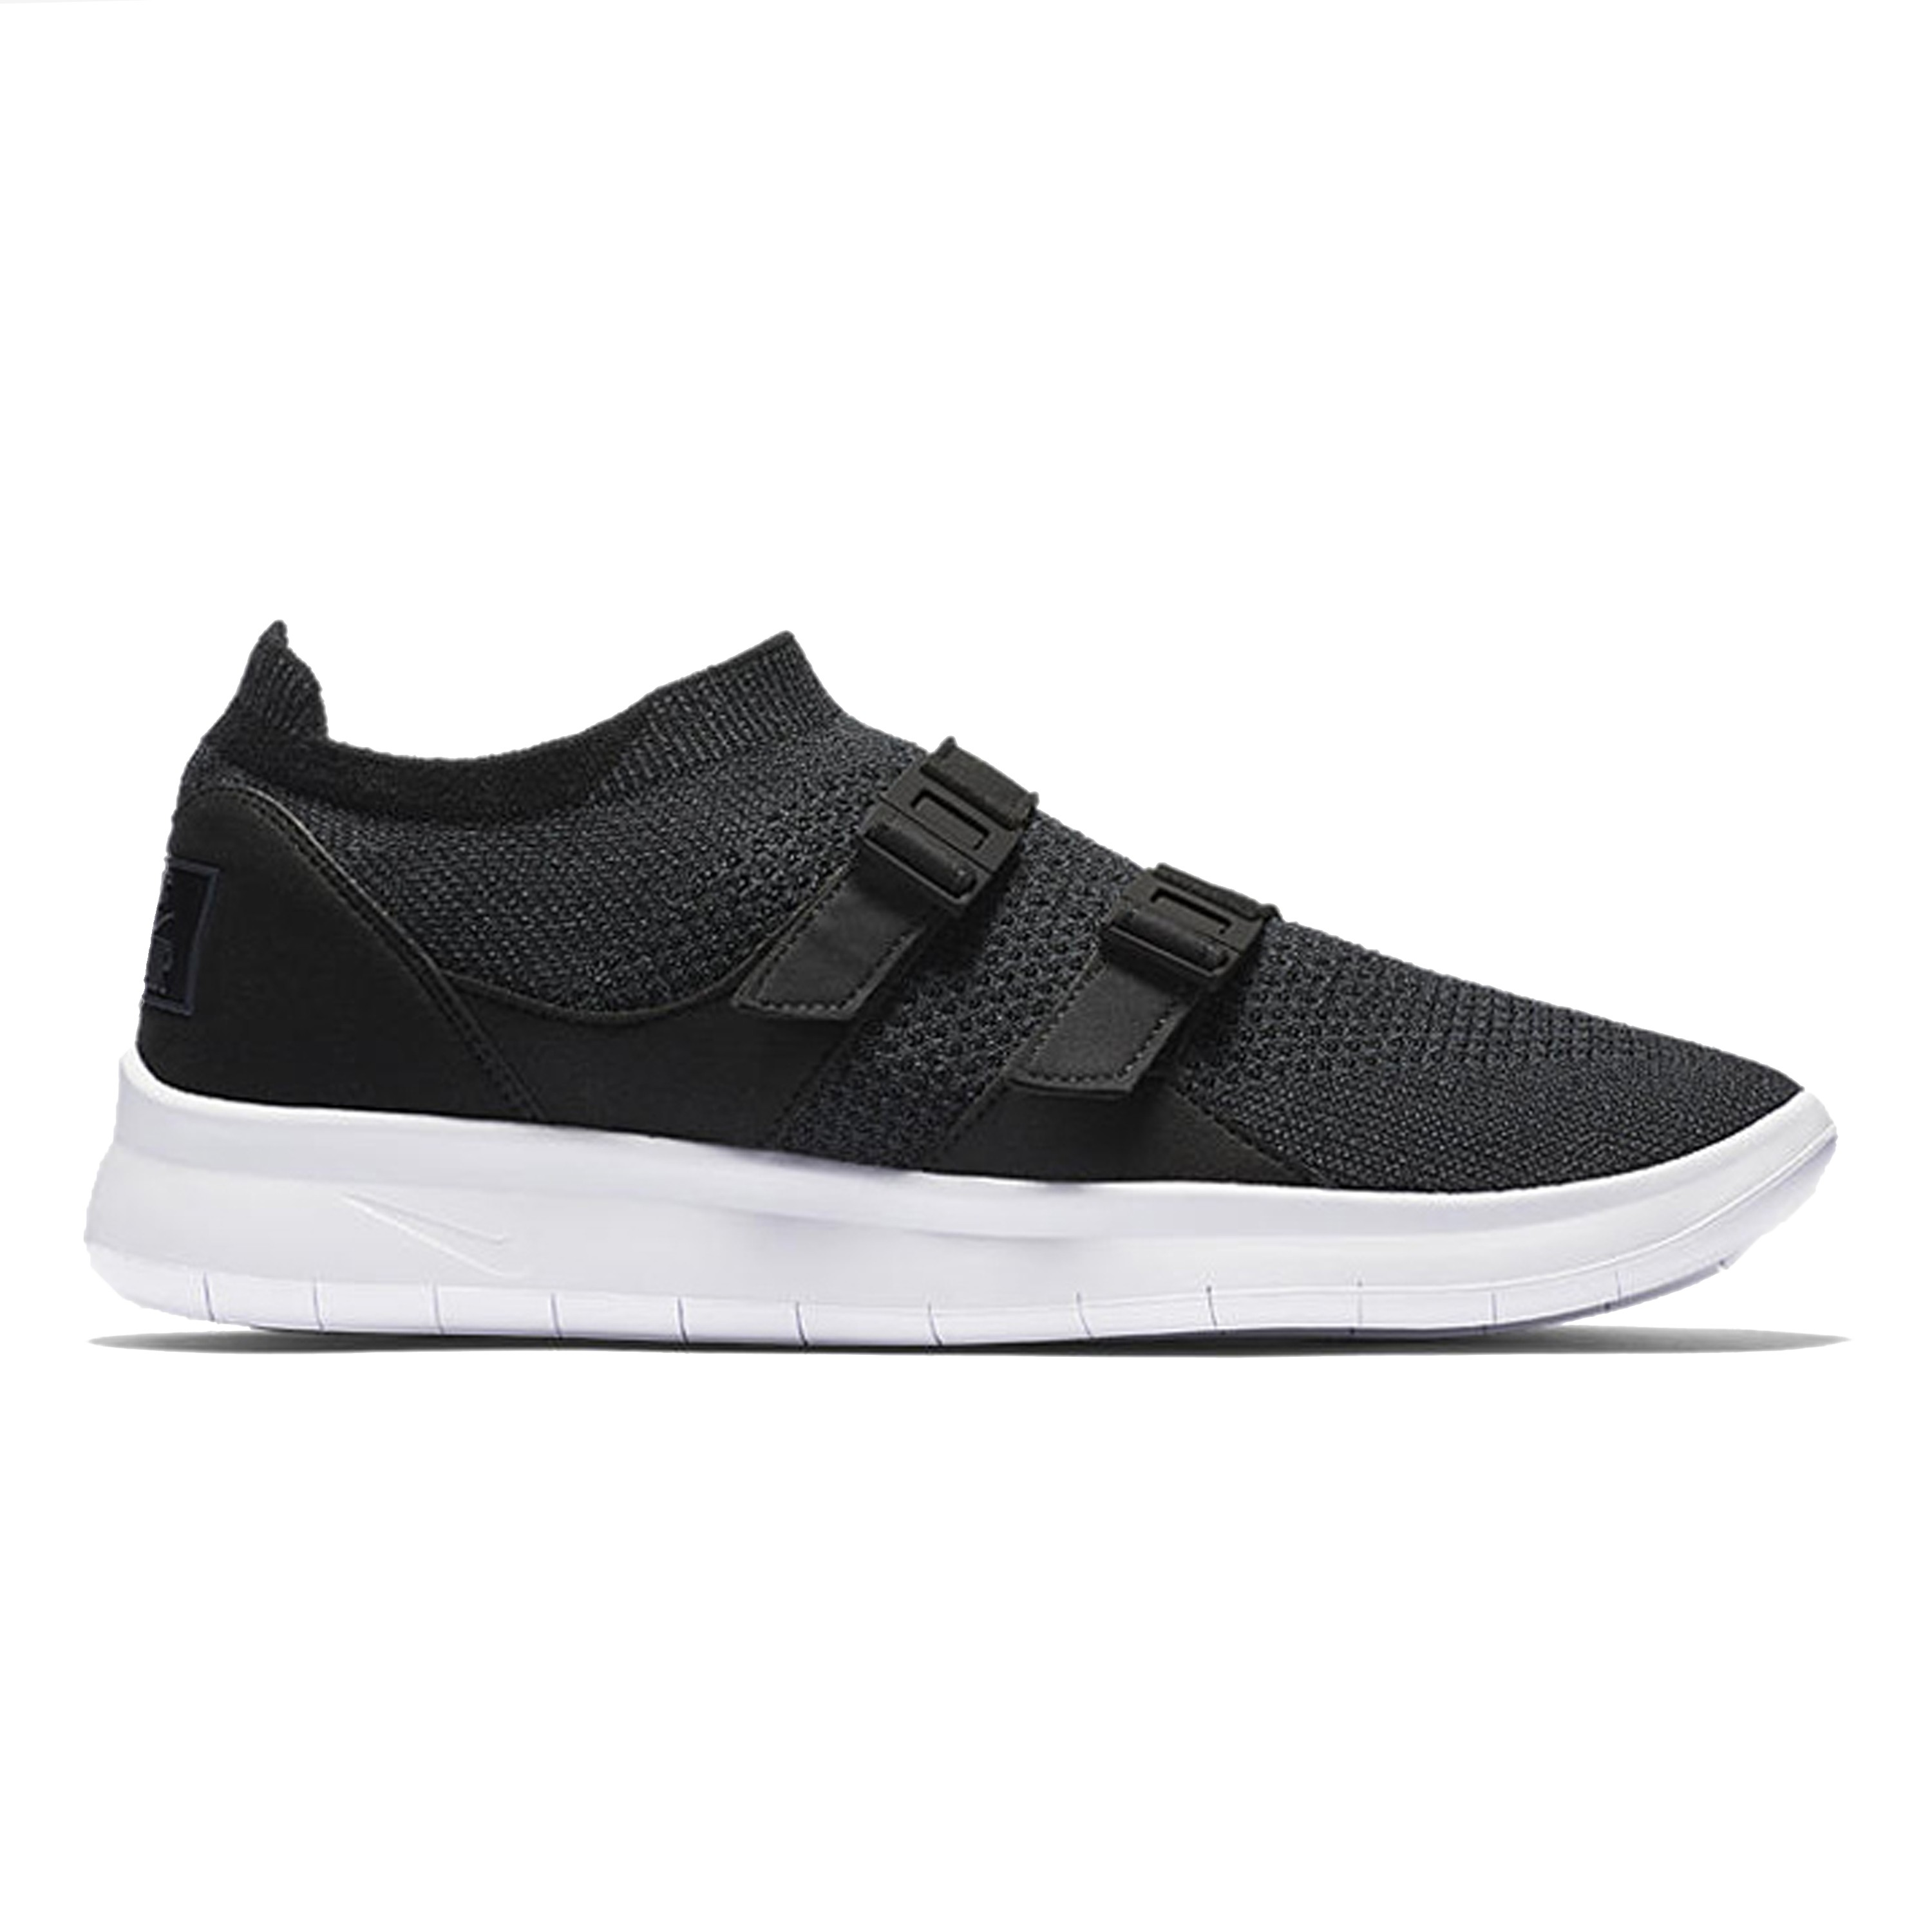 3aecec0f300b Nike Air Sock Racer Ultra Flyknit (Black Anthracite-Black-White ...